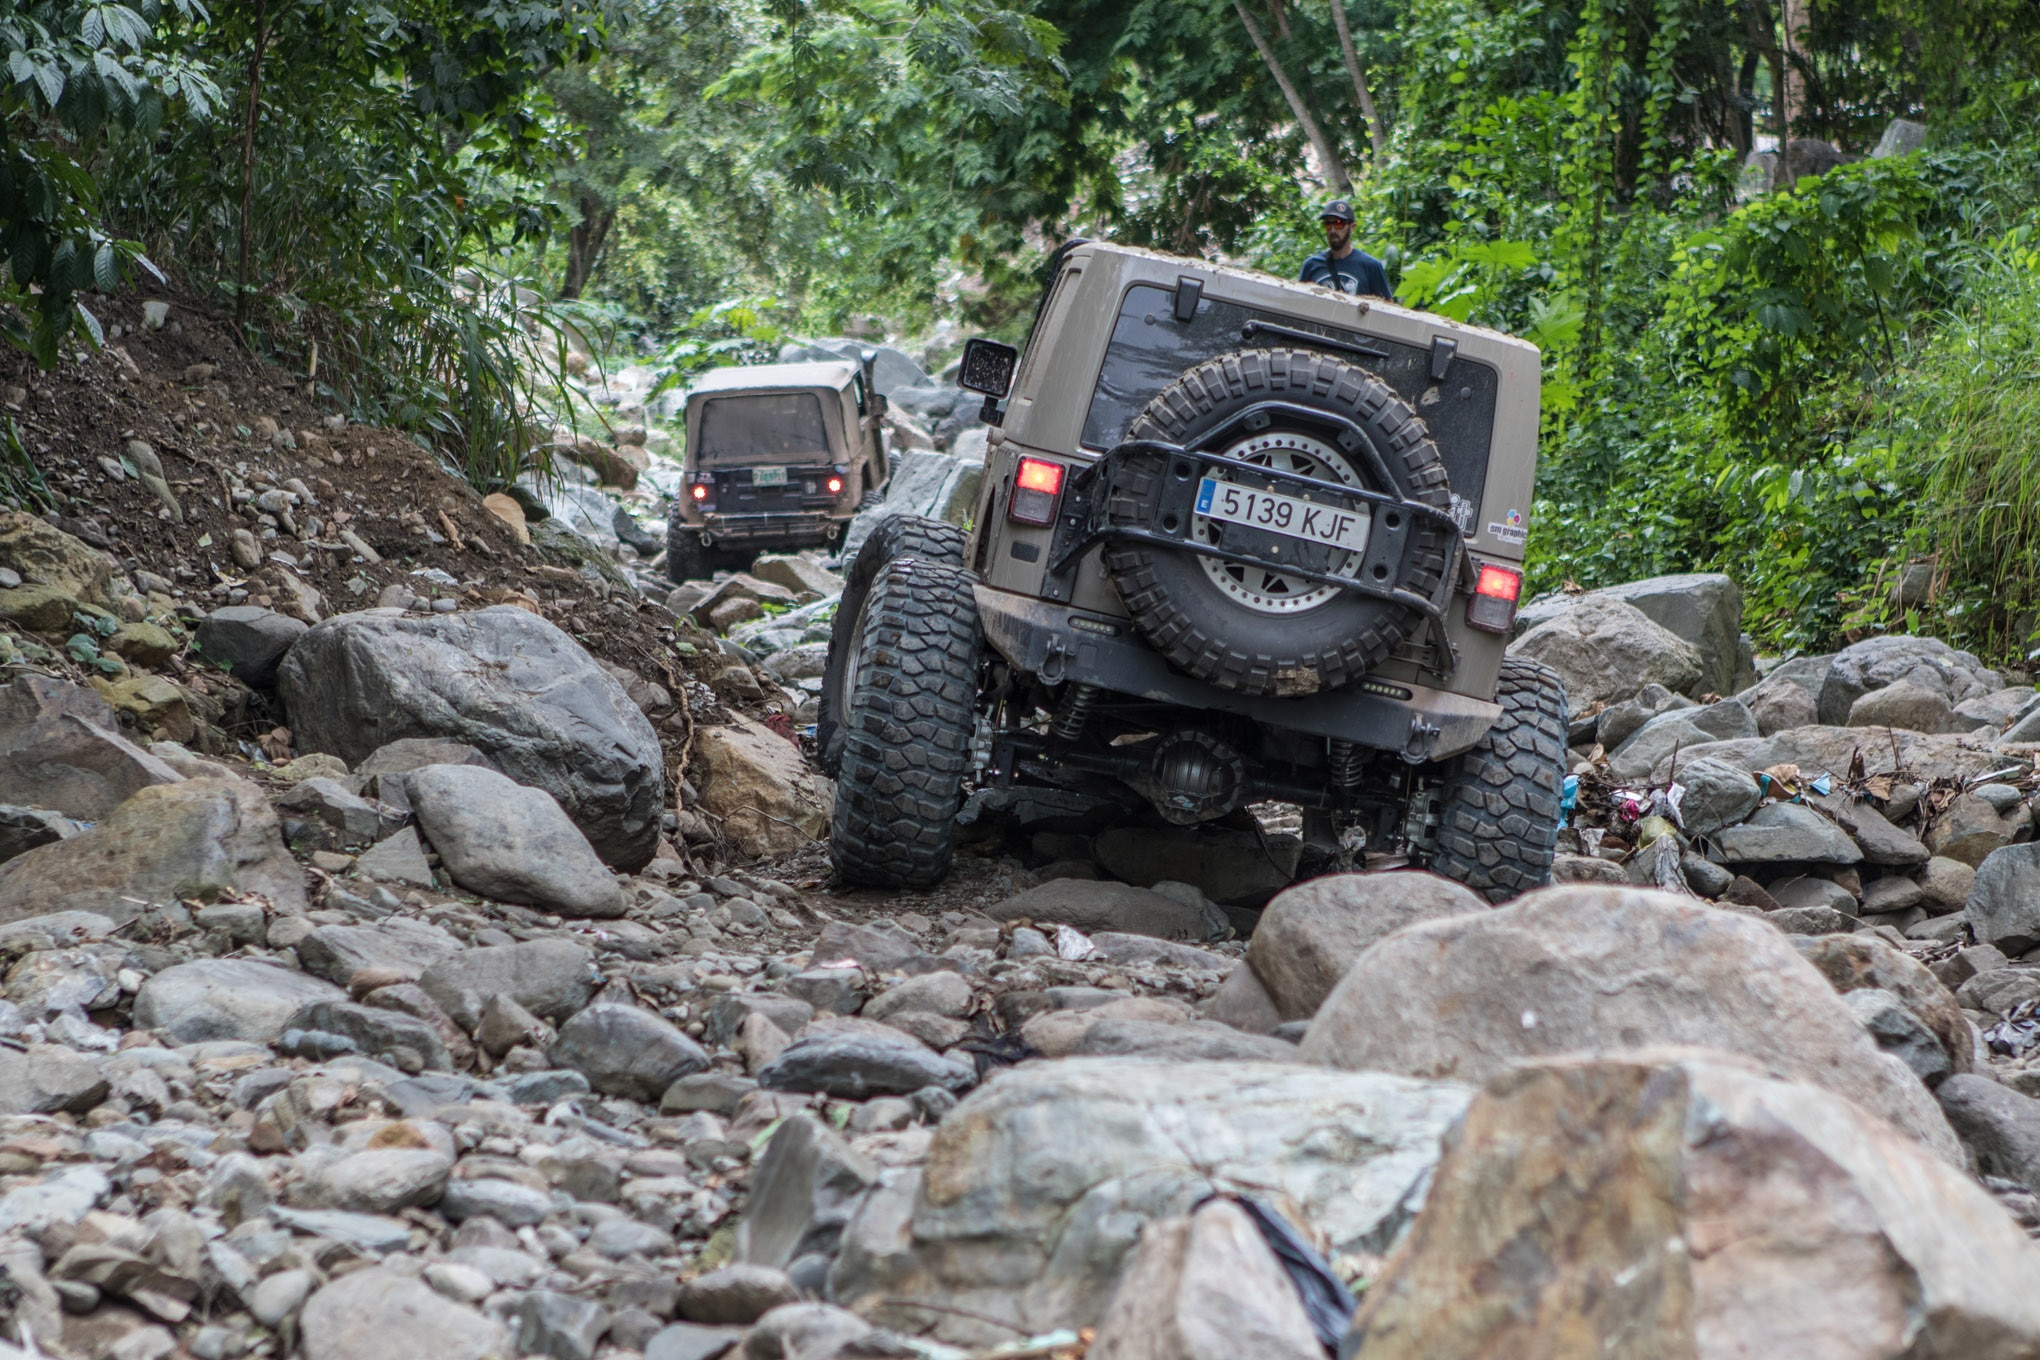 San Pedro Sula has a reputation as a dangerous city, but we found a rocky oasis in the shantytown bordering the city. Even with 42-inch BFGoodrich Krawlers, Jose Gayoso bent the lower links on his JK getting through this trail!